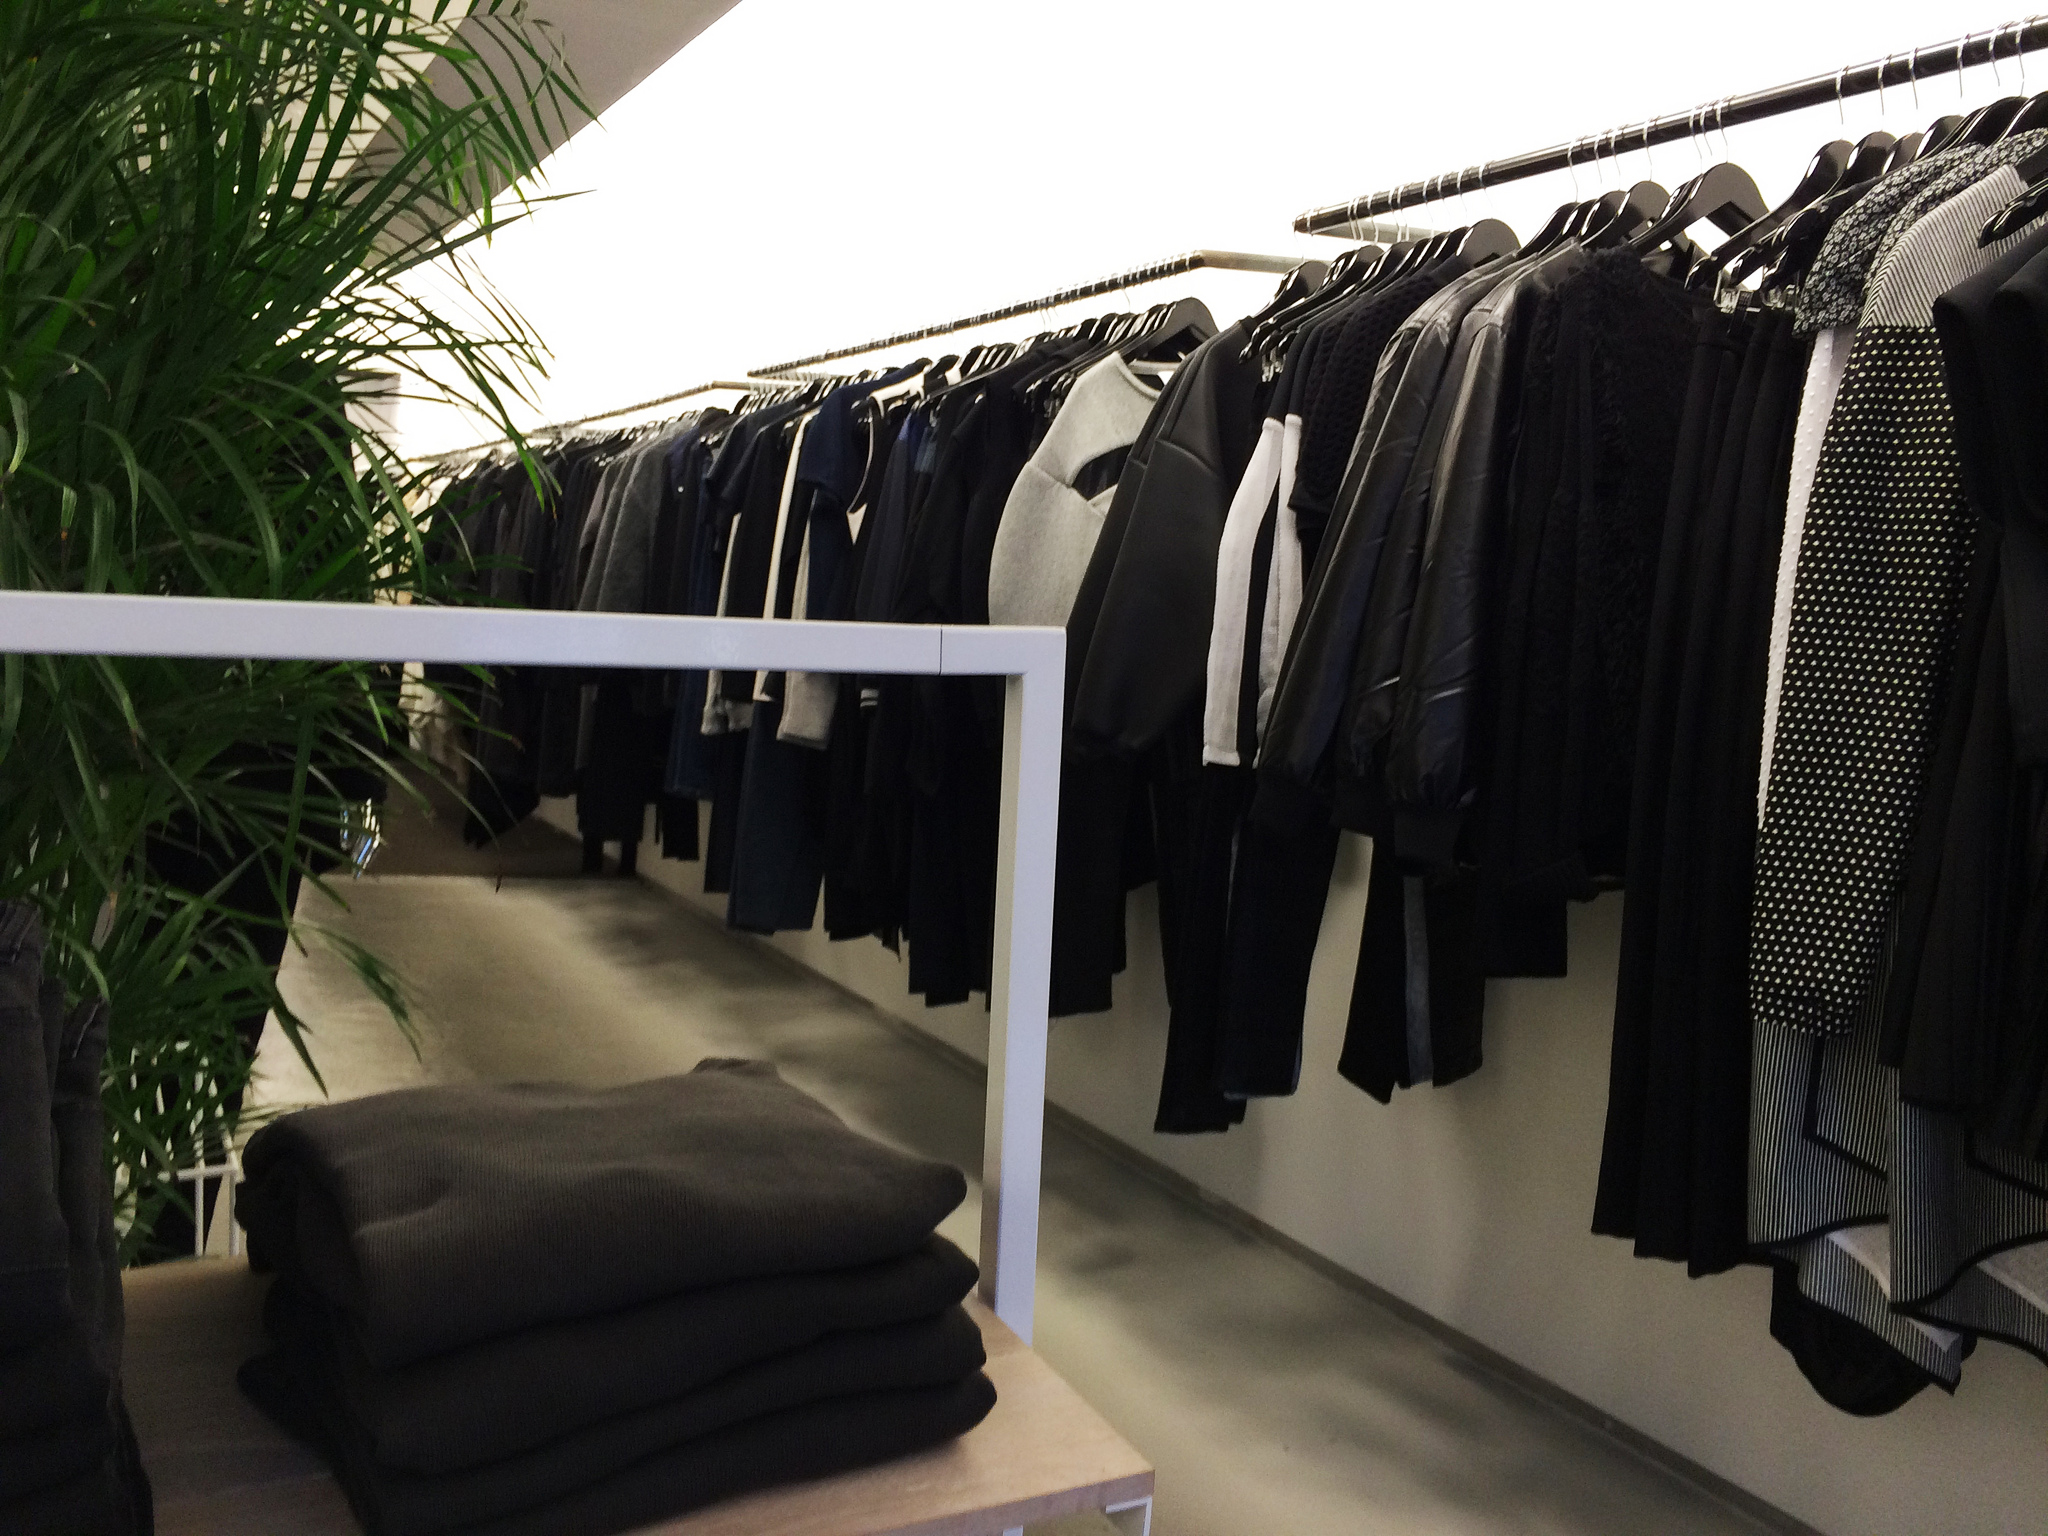 Womenswear at Oak in New York. Photo by alphacityguides.